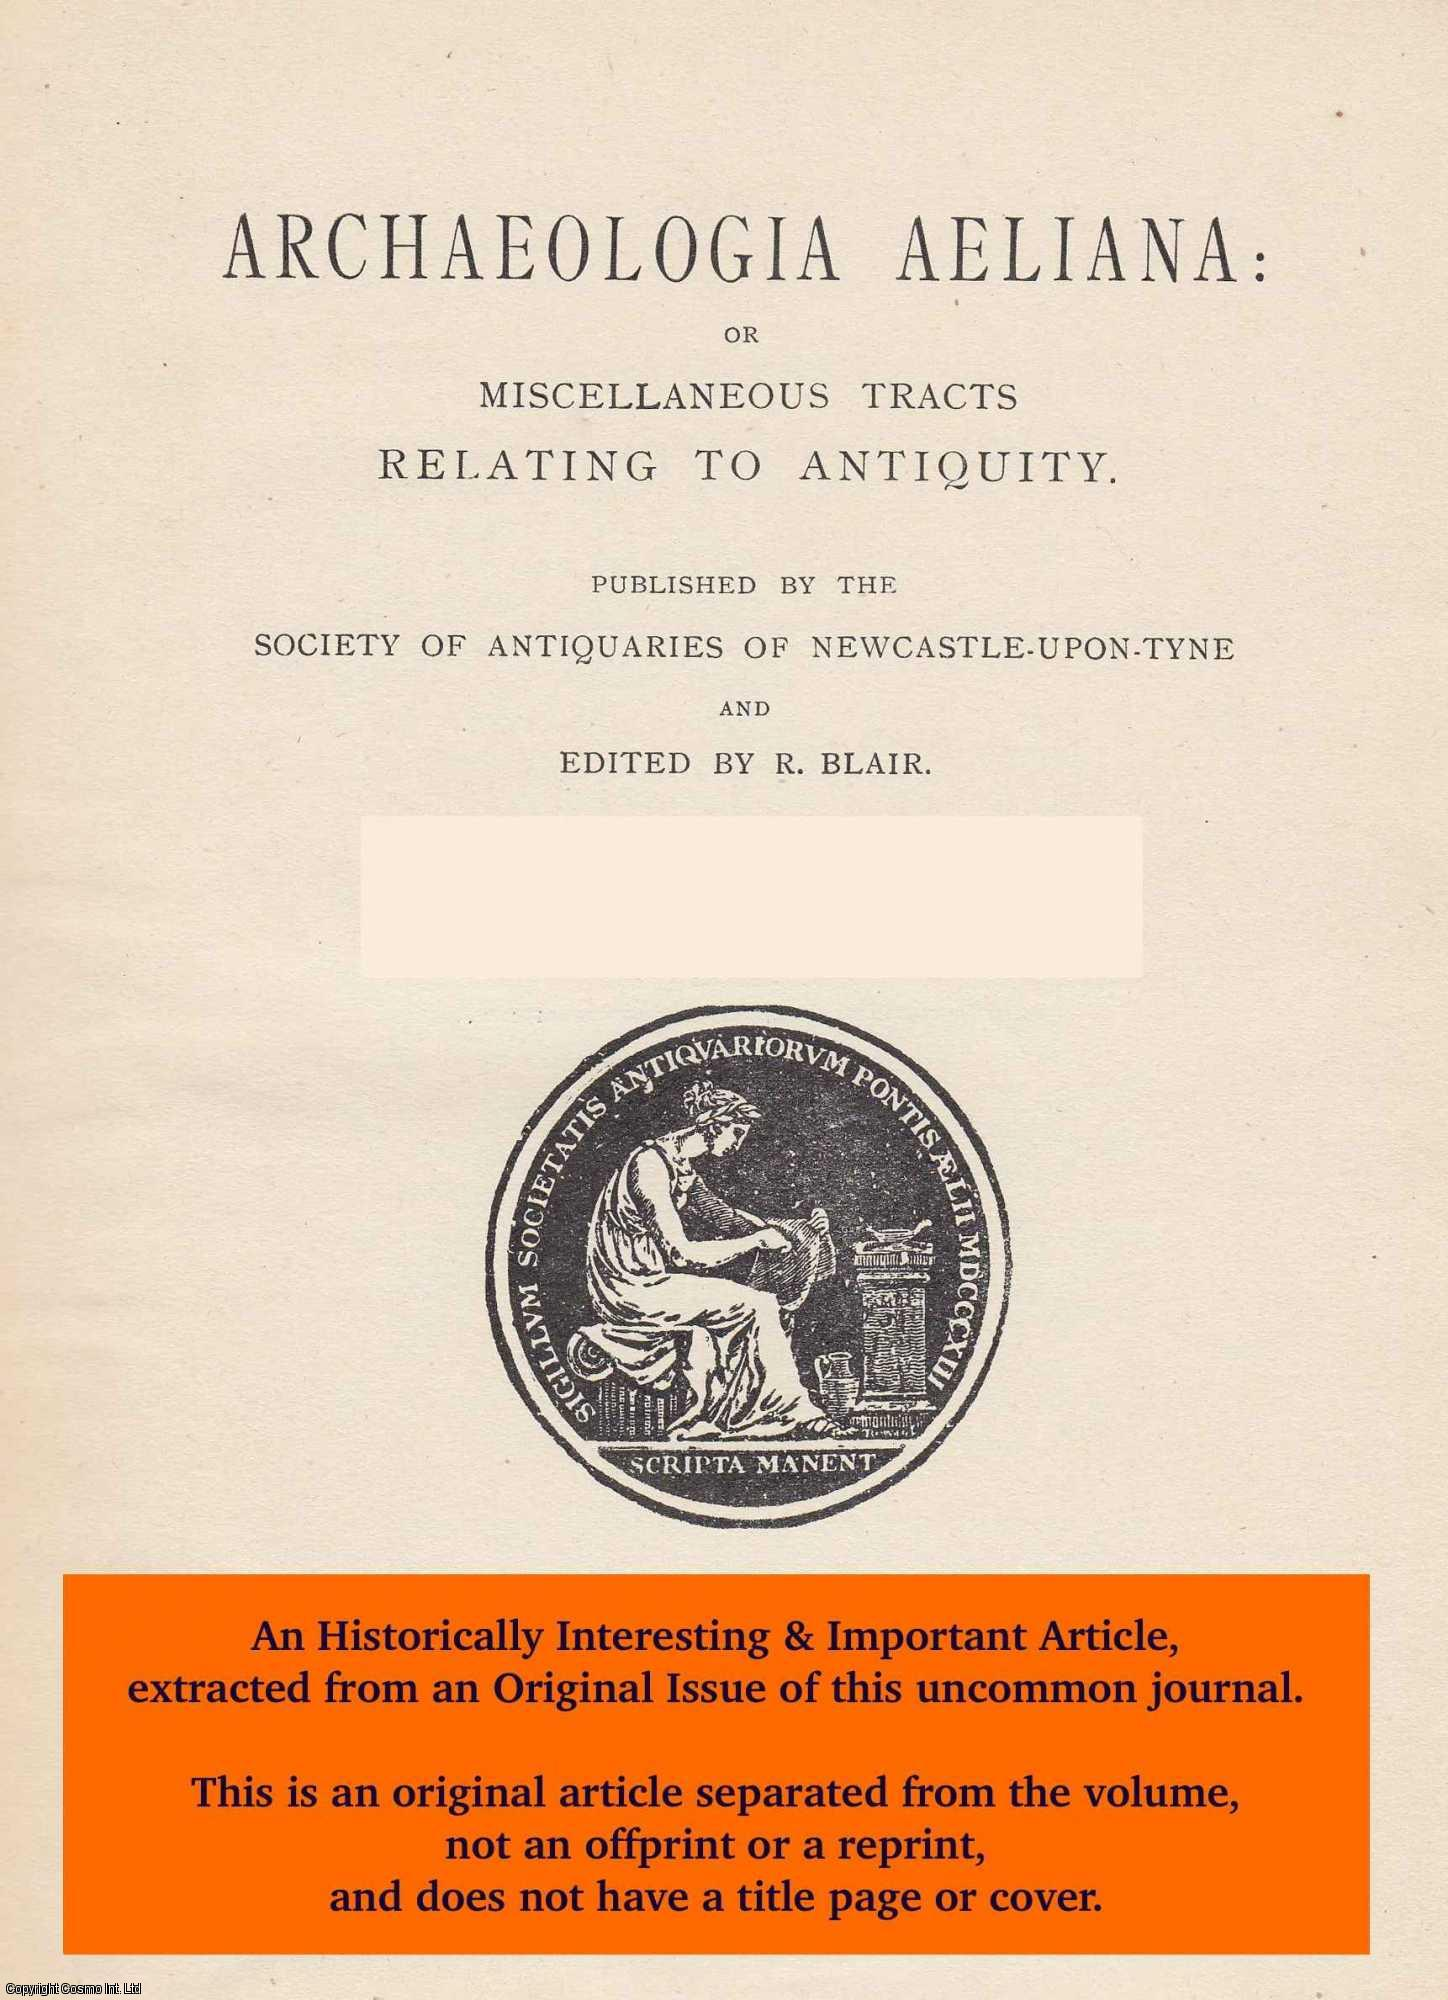 BIRLEY & MARGARET BIRLEY, ERIC - Fourth Report on Excavations at Chesterholm-Vindolanda. An original article from The Archaeologia Aeliana: or Miscellaneous Tracts Relating to Antiquity, 1938.